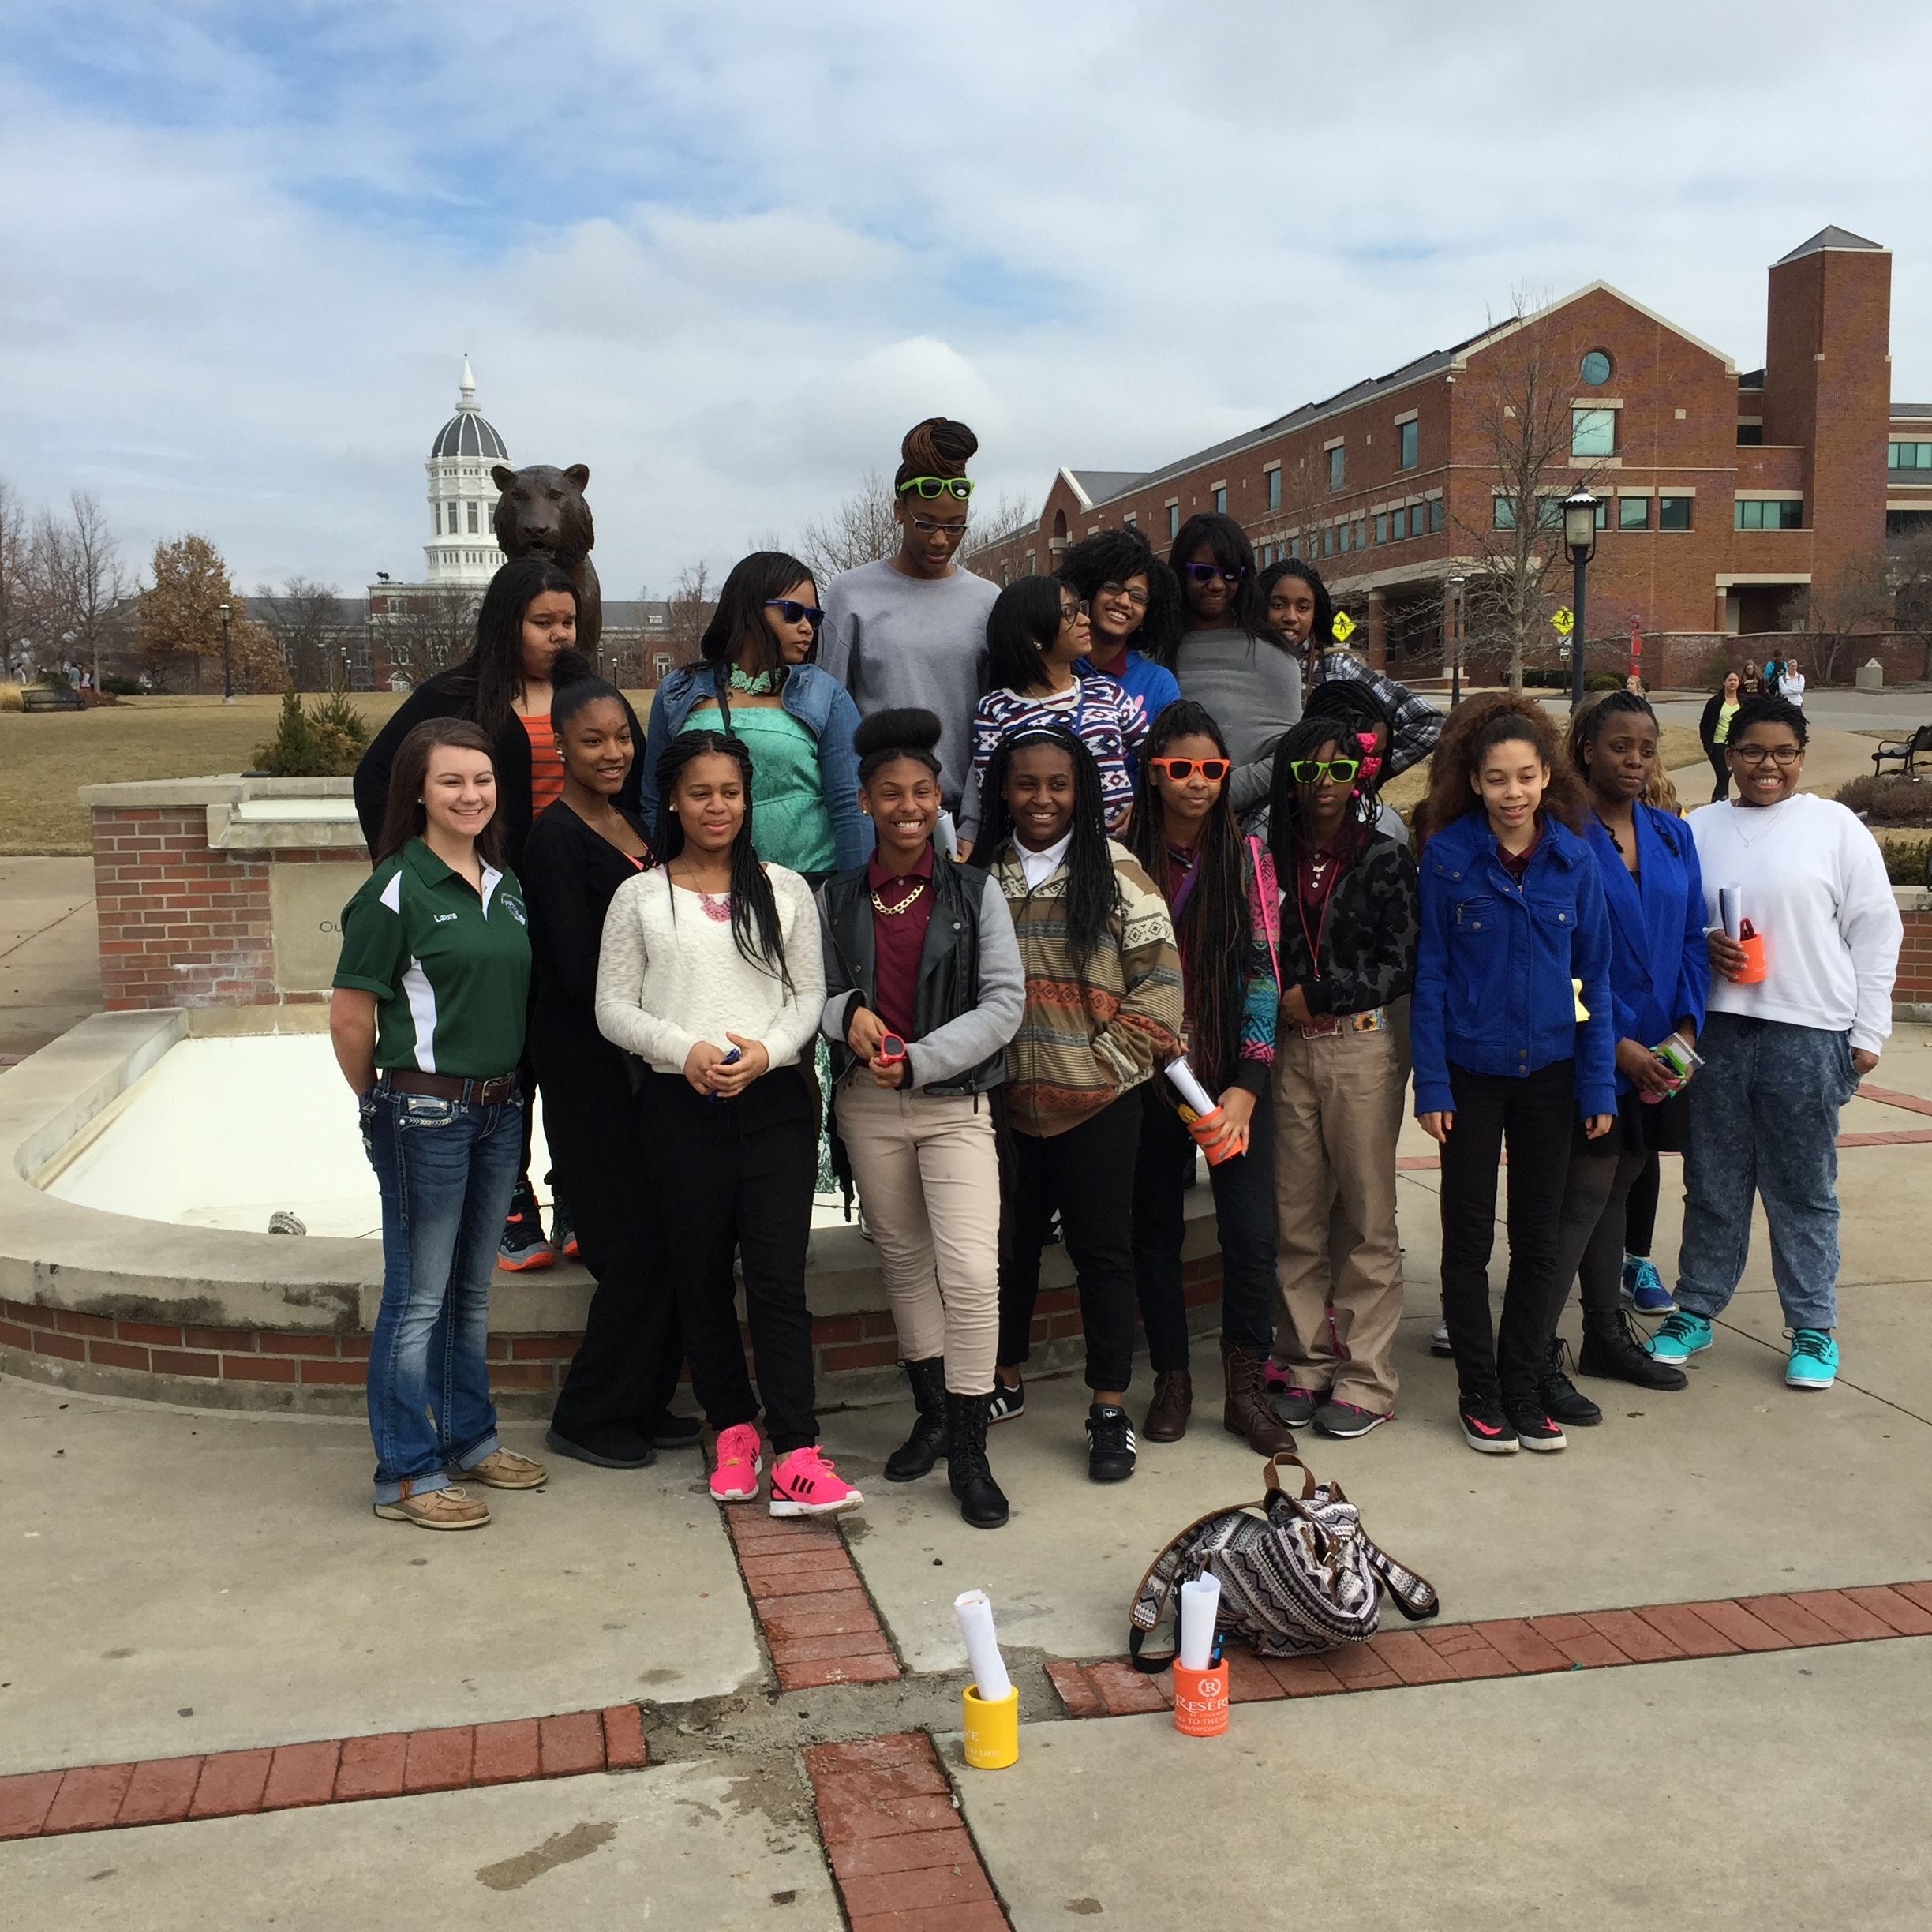 Understanding the Importance of Education, University of Missouri Tour